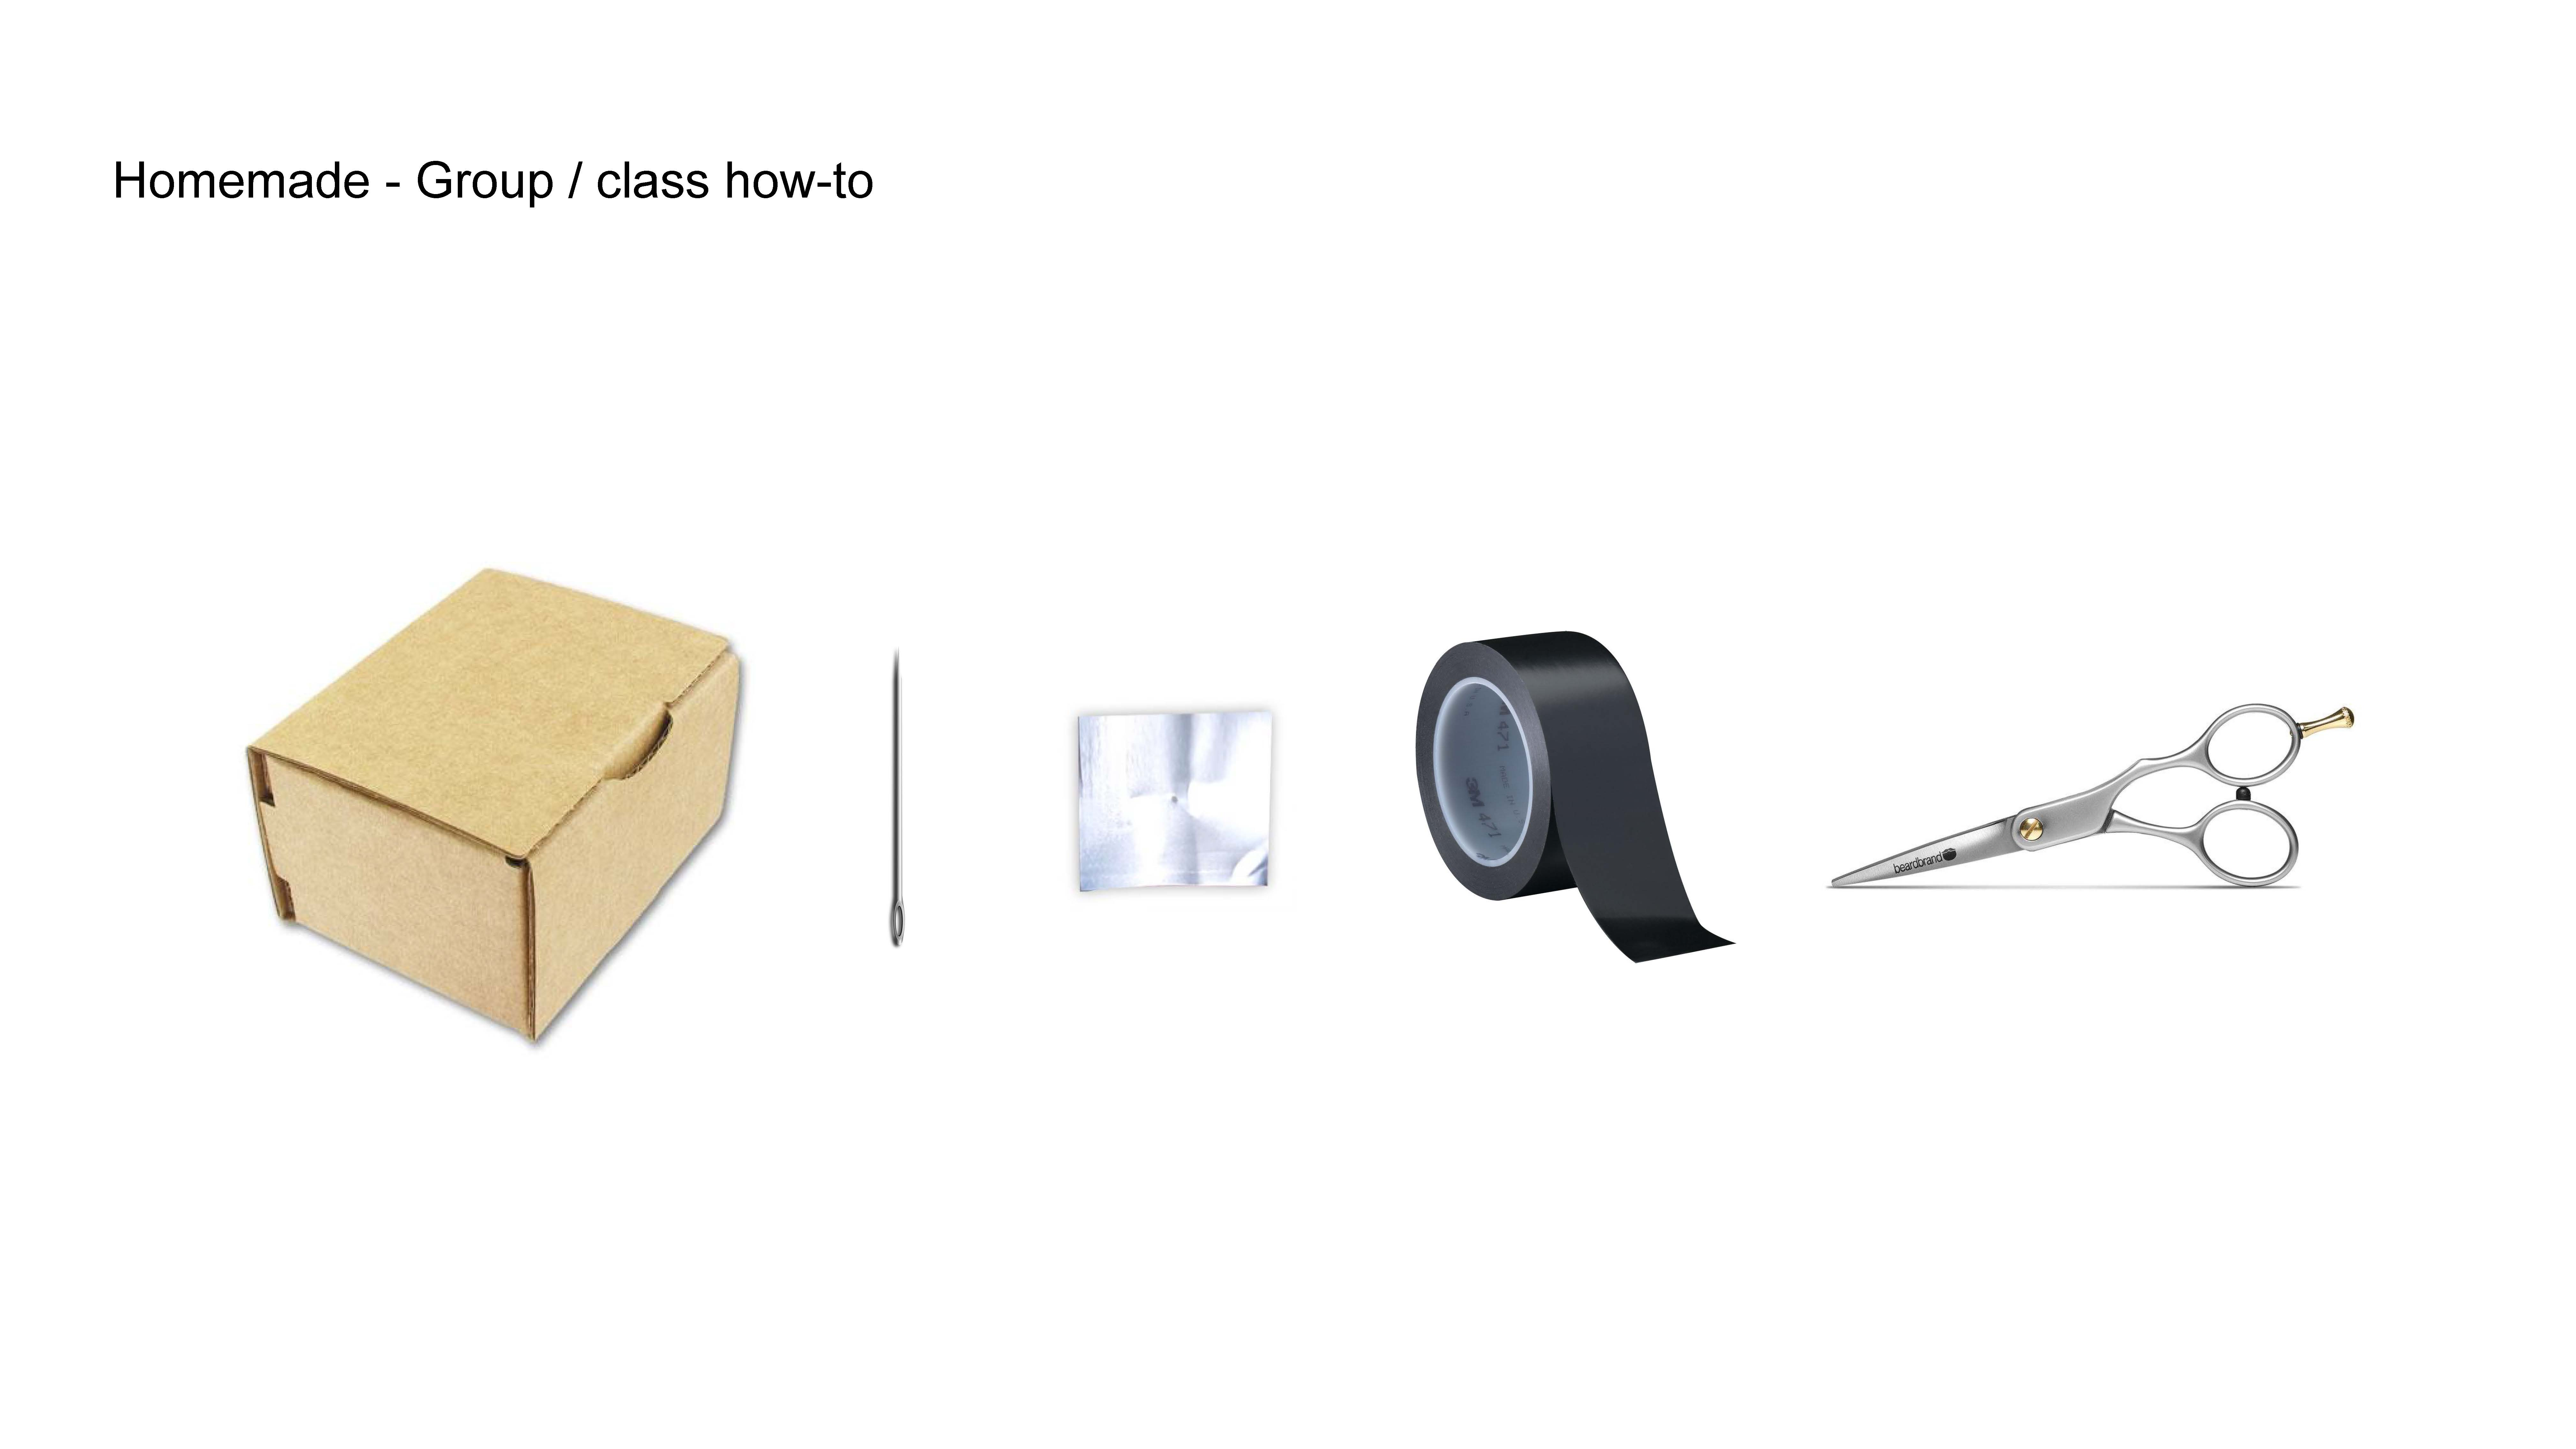 Materials For Making Your Own Pinhole Camera